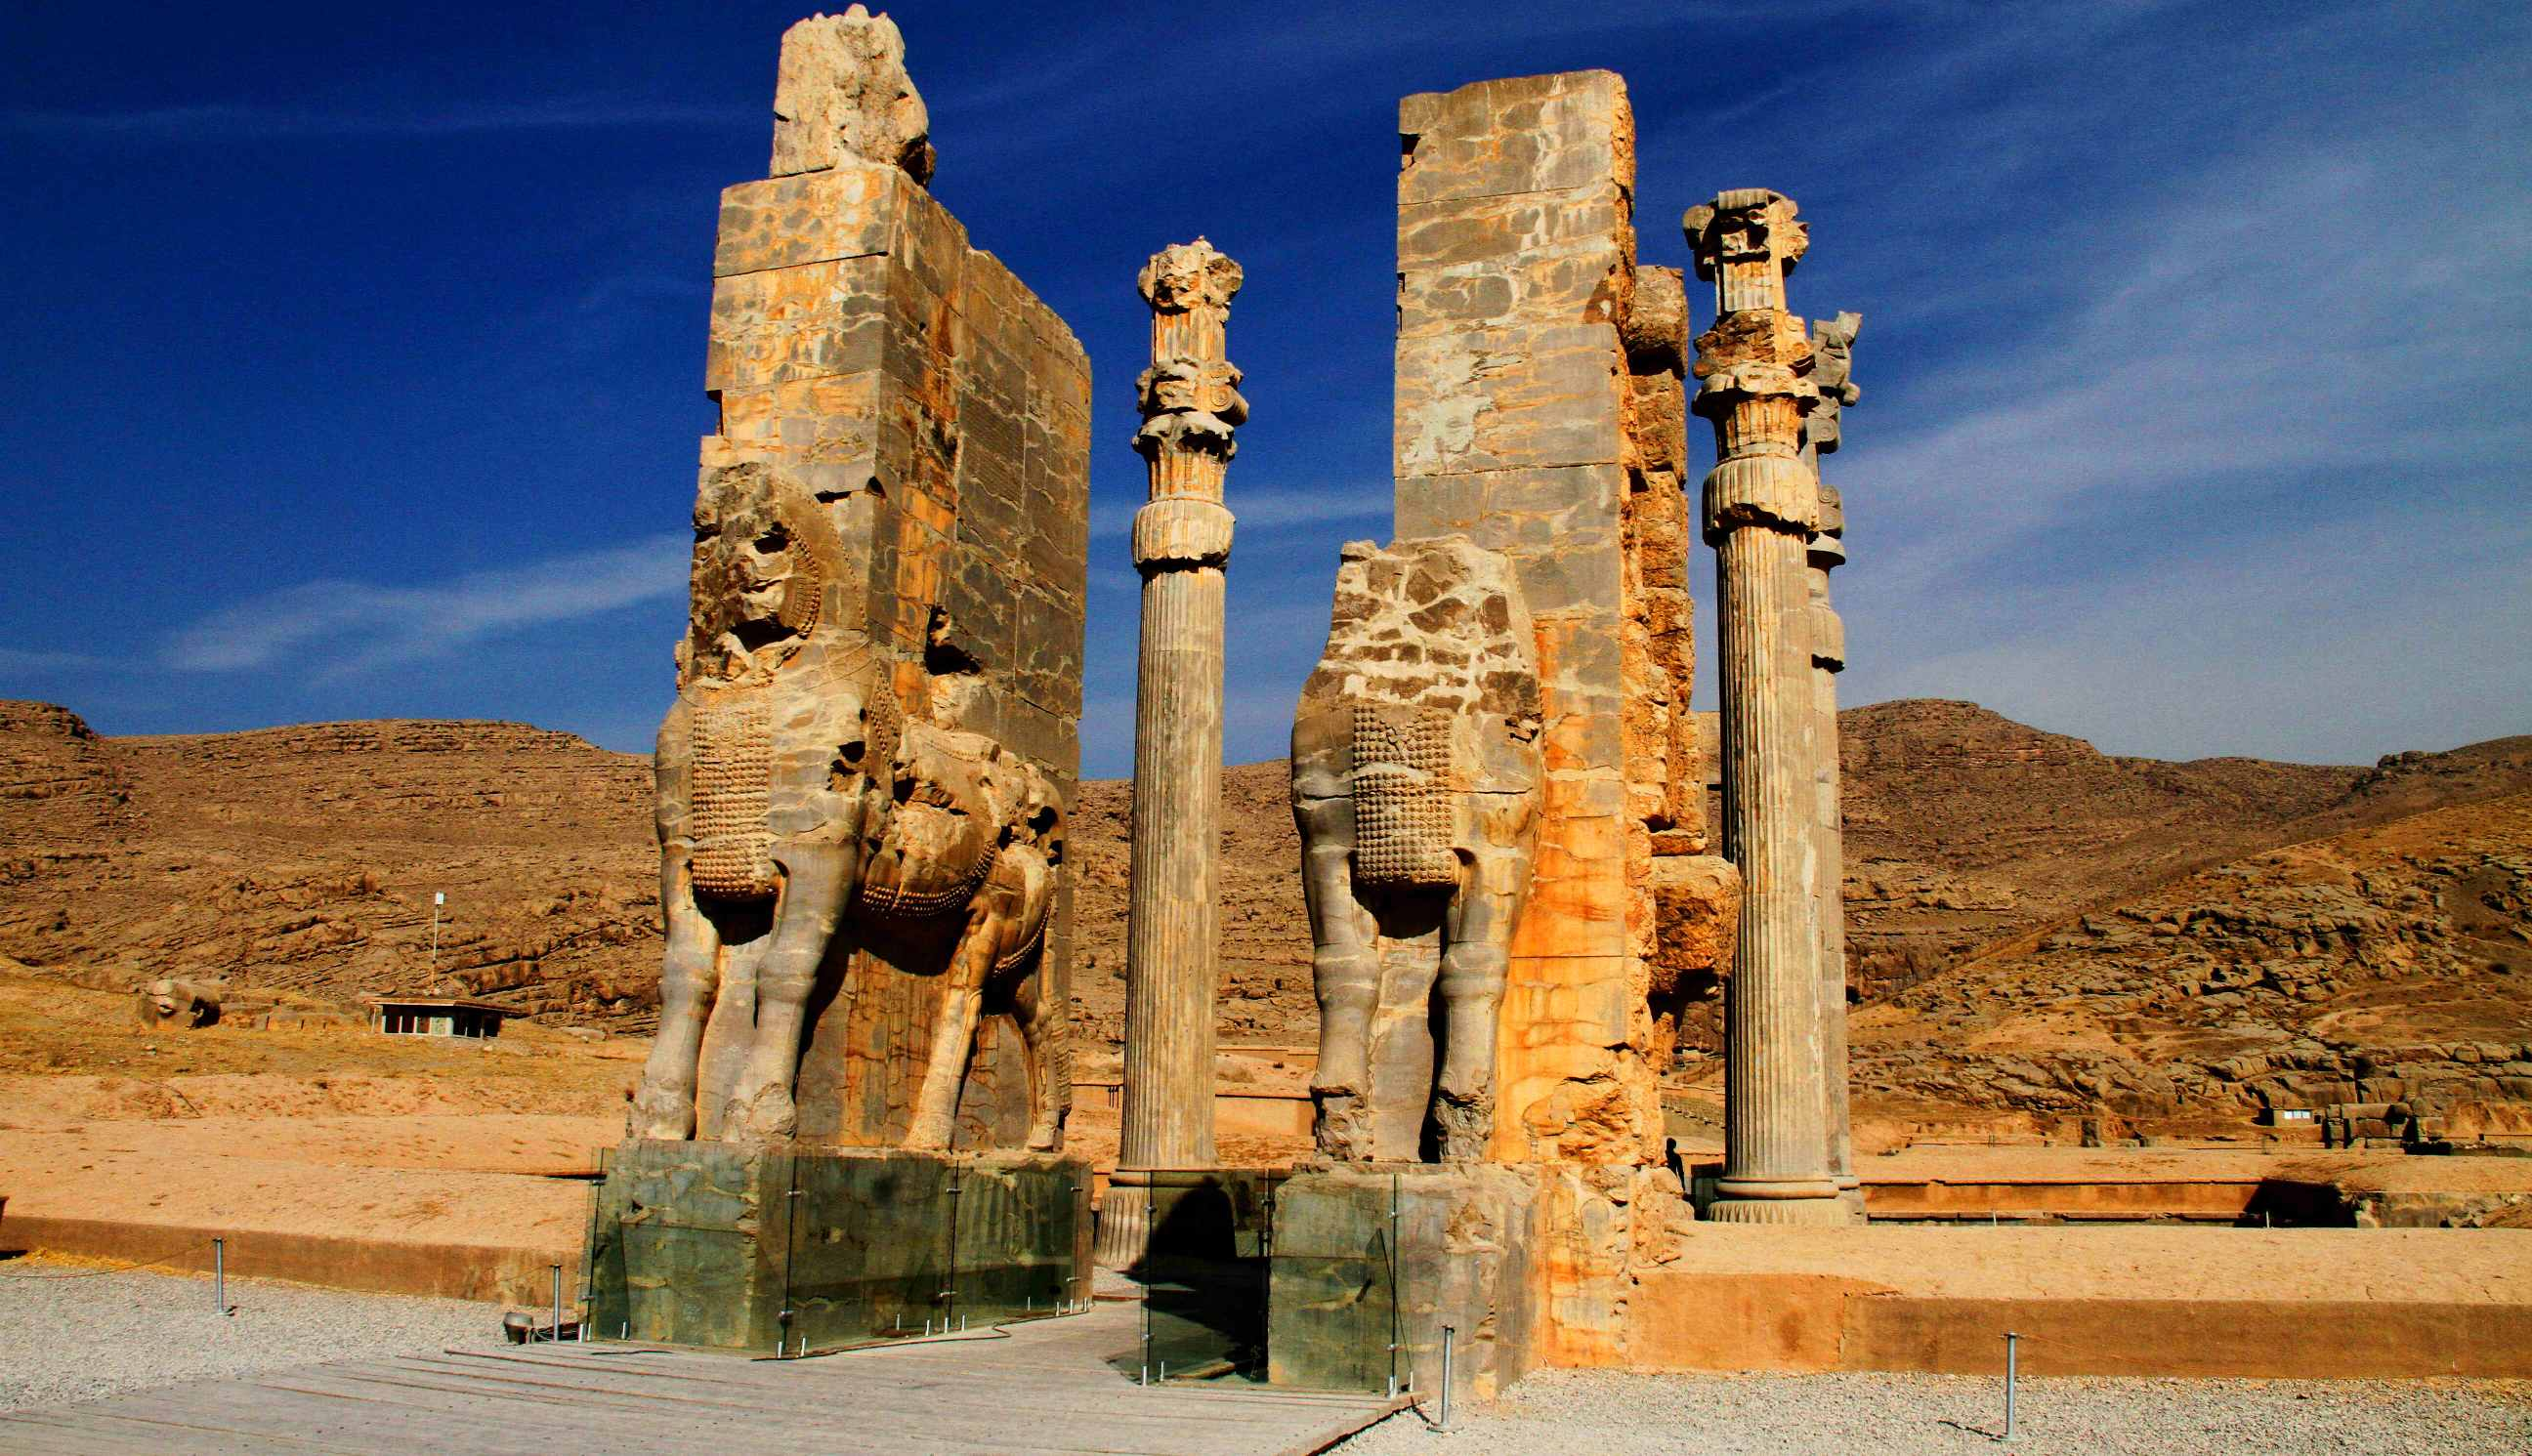 Persepolis City Takhte Jamshid Shiraz History Photos More